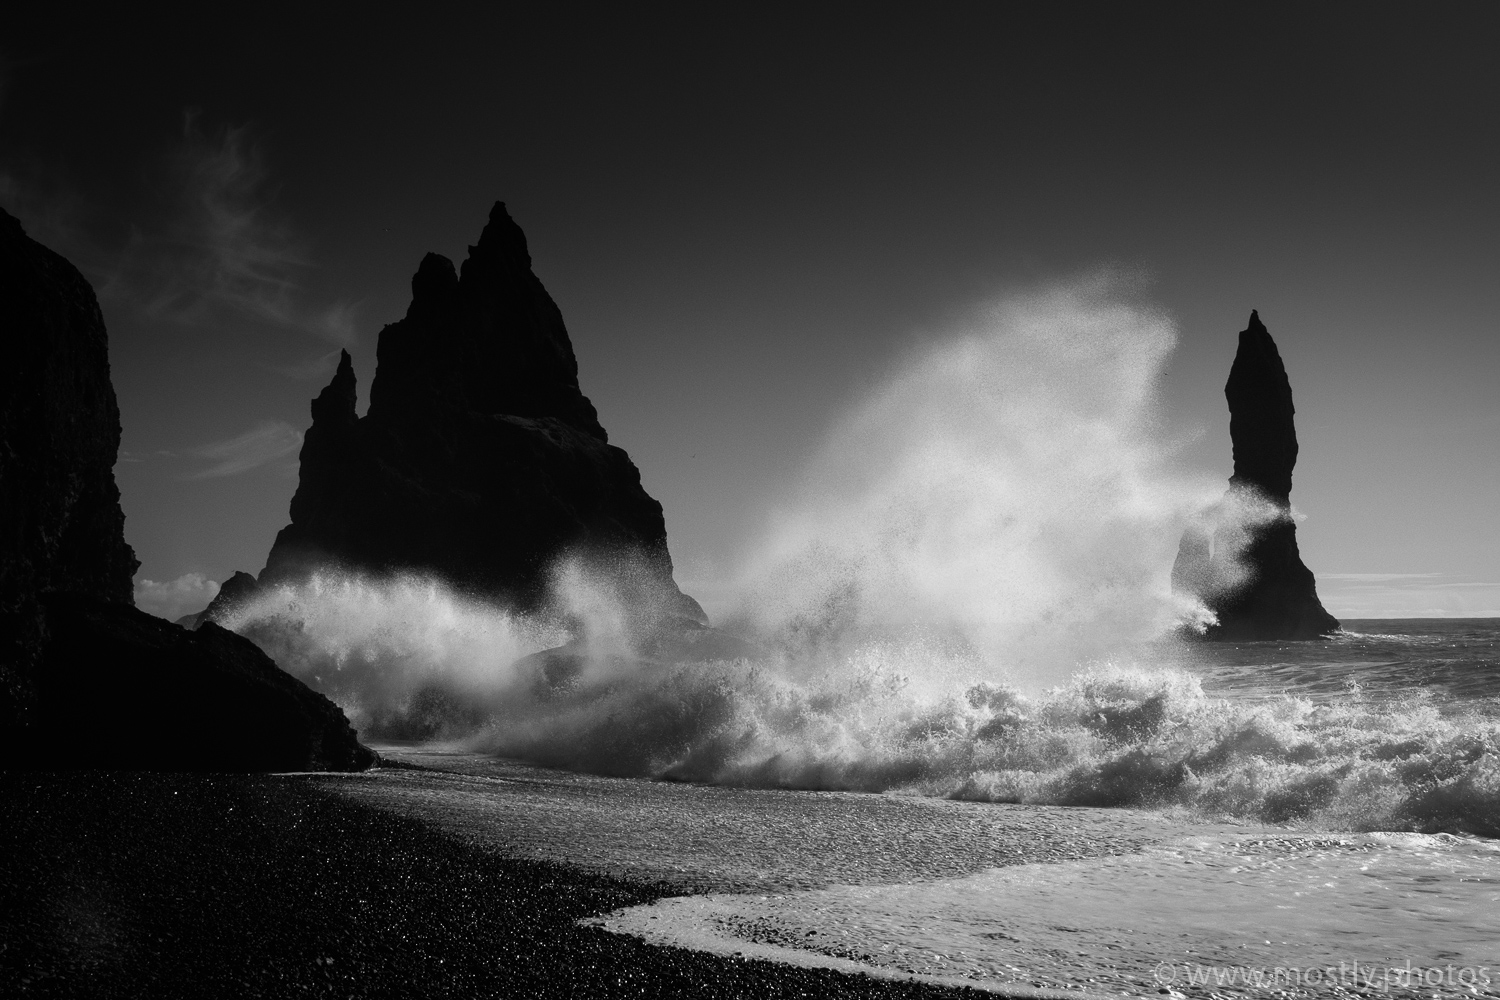 Fuji X-T1 - The Black Sand Beaches at Vik in Iceland